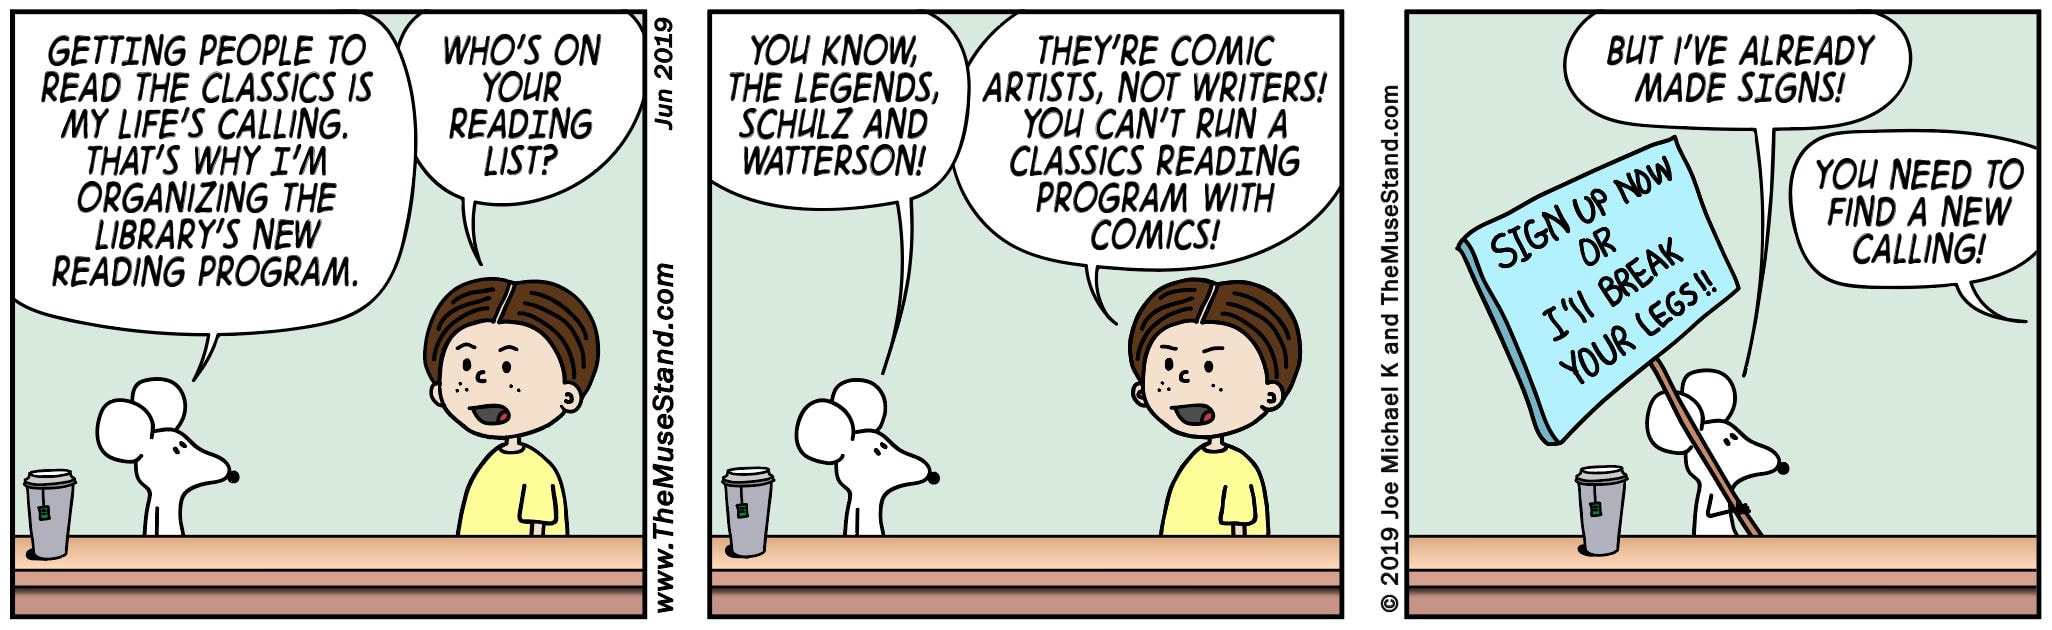 Shifty's New Summer Reading Program - Think Shop Comics